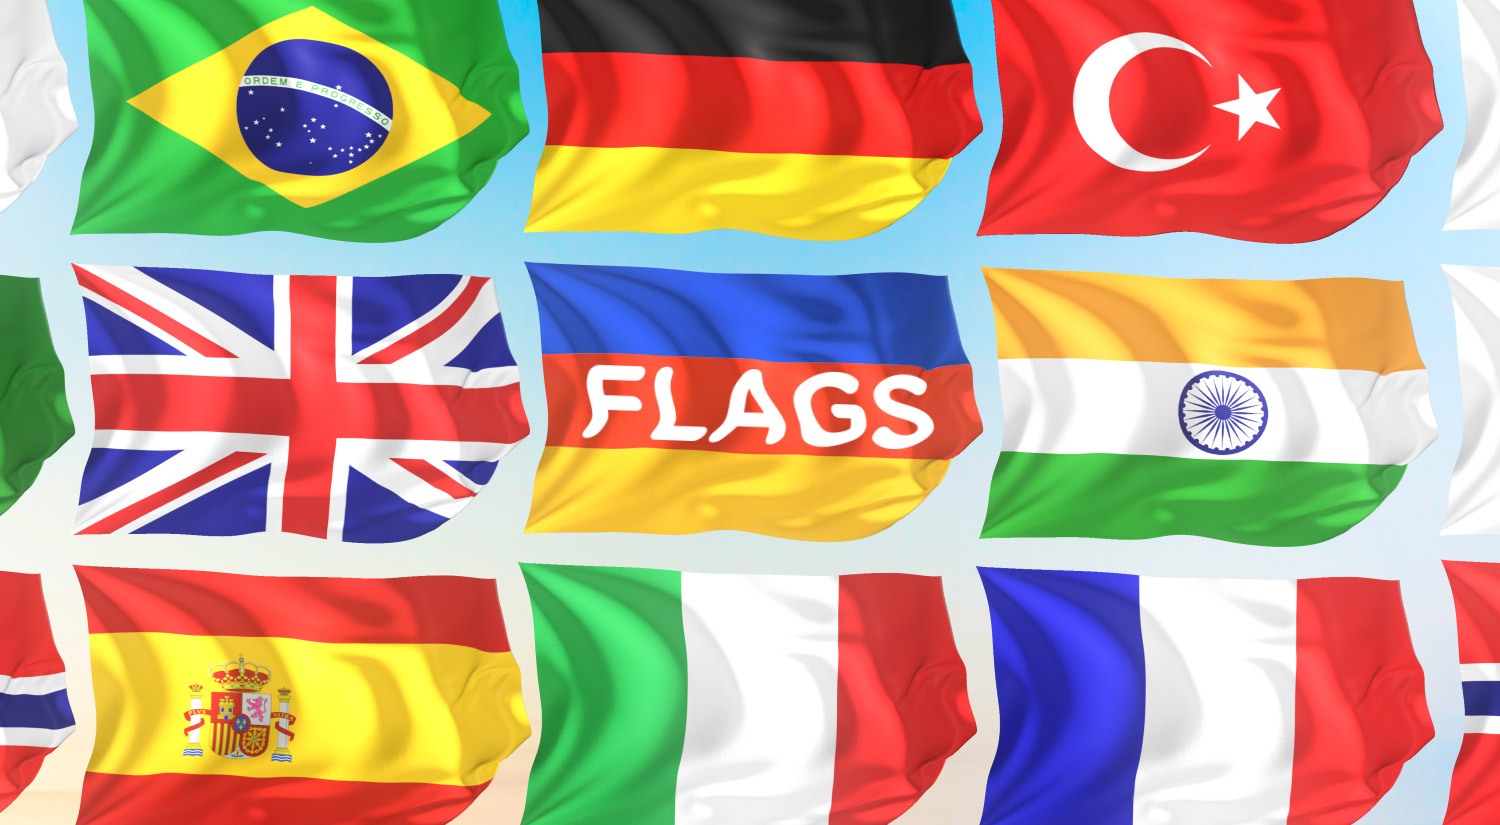 Download HD Flag Backgrounds